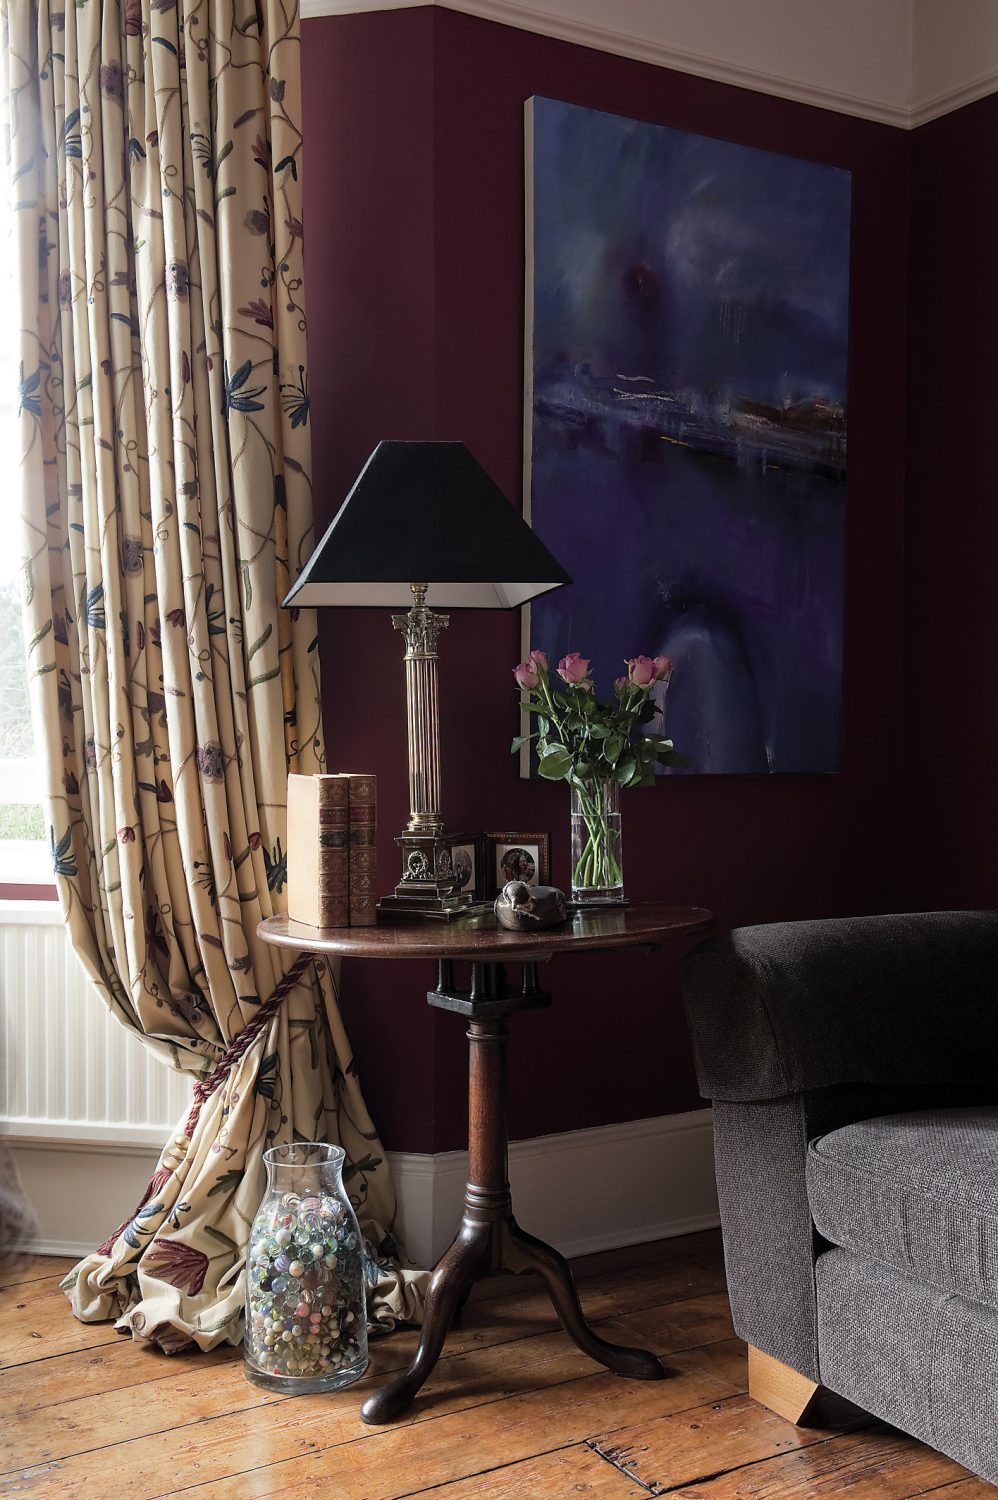 The fire blazes away in the sitting room with its magnificent marble surround and classic late Regency/early Victorian grate. An ornate gilded mirror stands on the mantelshelf along with storm lanterns and scented candles to perfume the air